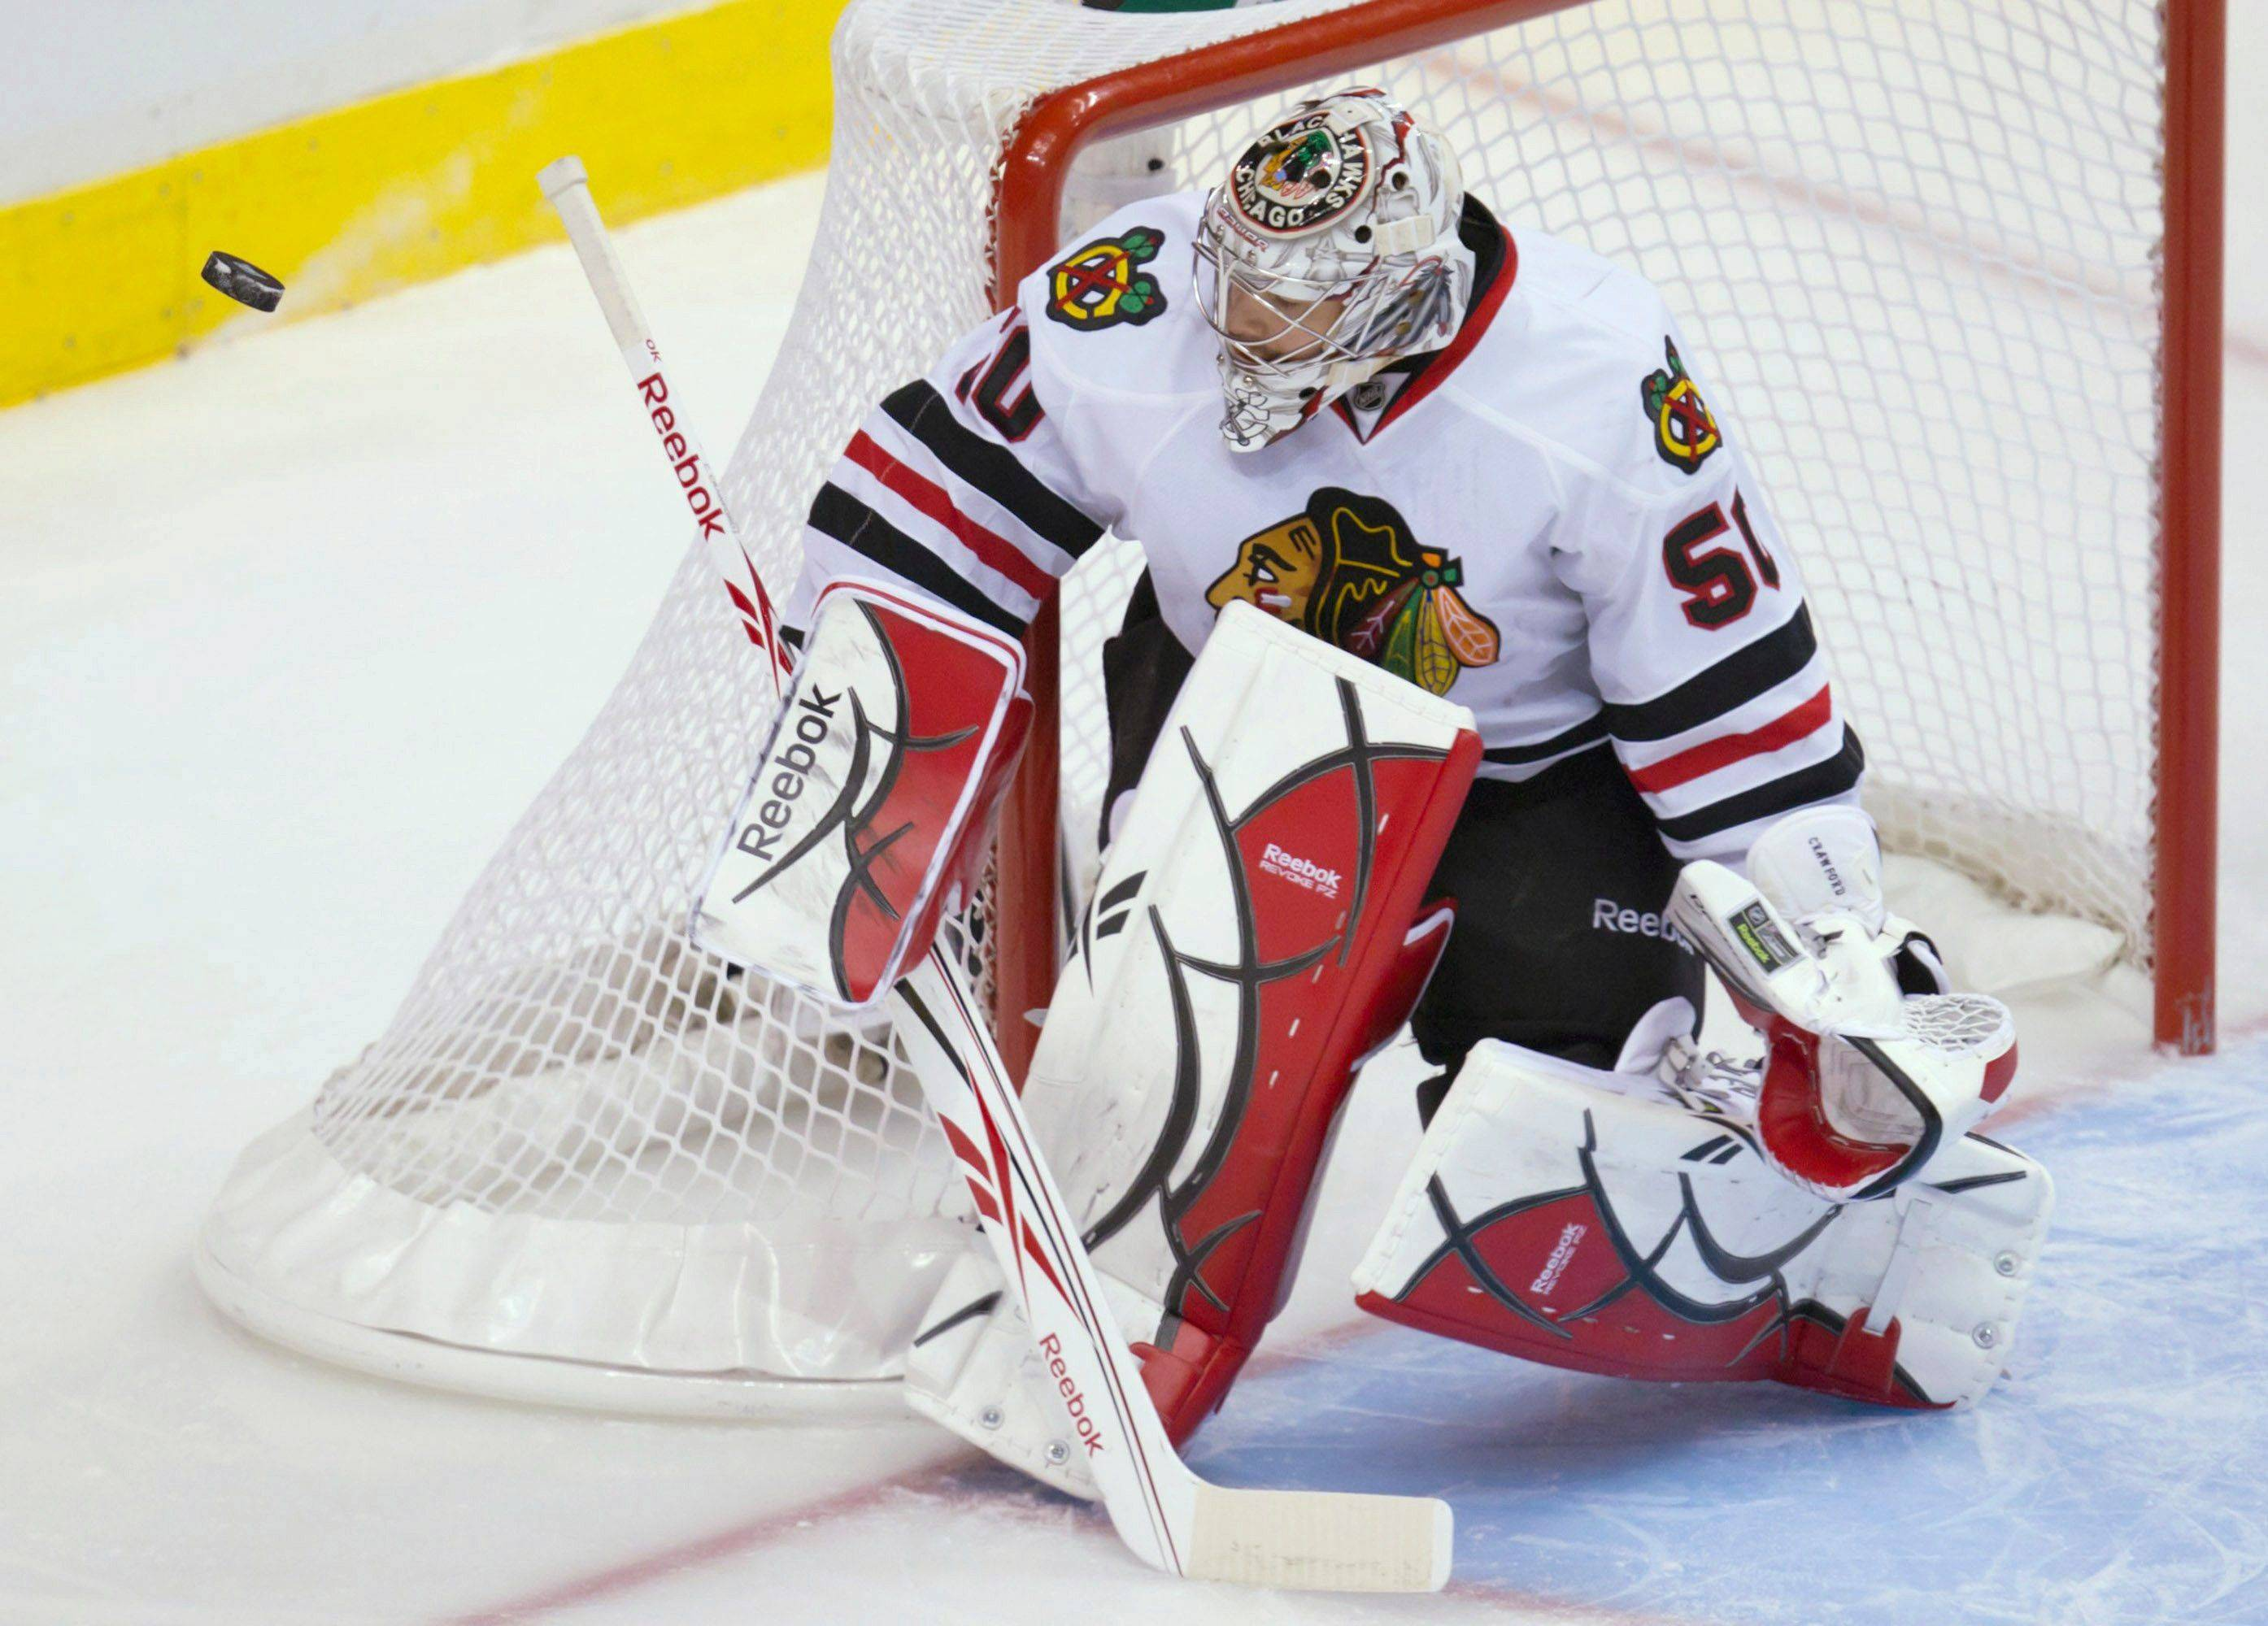 Blackhawks goalie Corey Crawford turns away a Vancouver Canucks shot during the first period of Game 7 Tuesday.